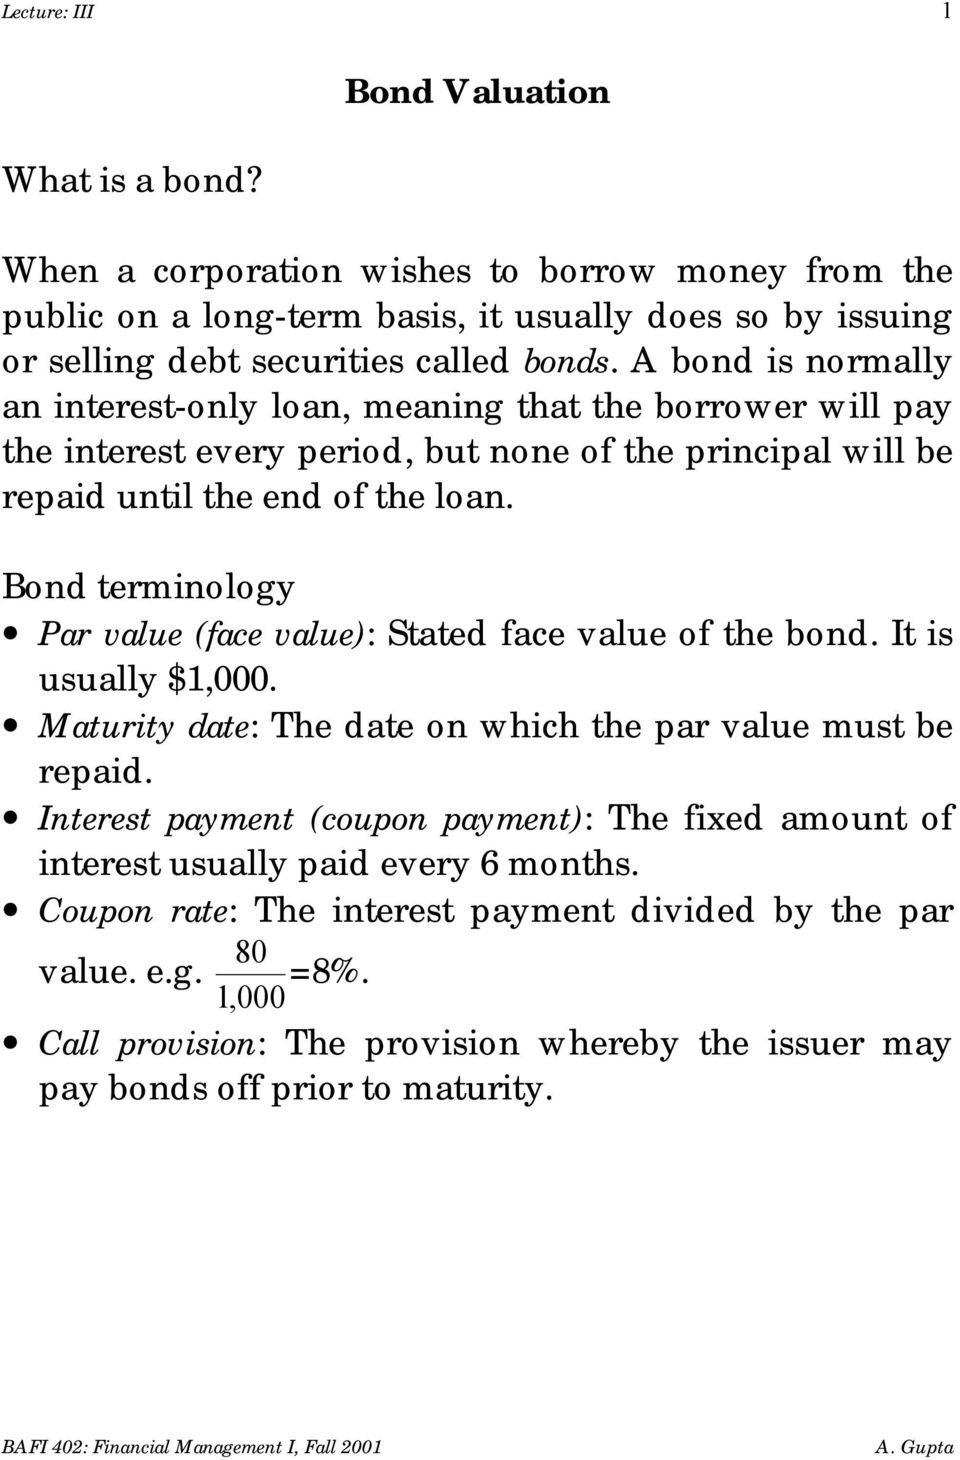 Bond terminology Par value (face value): Stated face value of the bond. It is usually $1,000. Maturity date: The date on which the par value must be repaid.